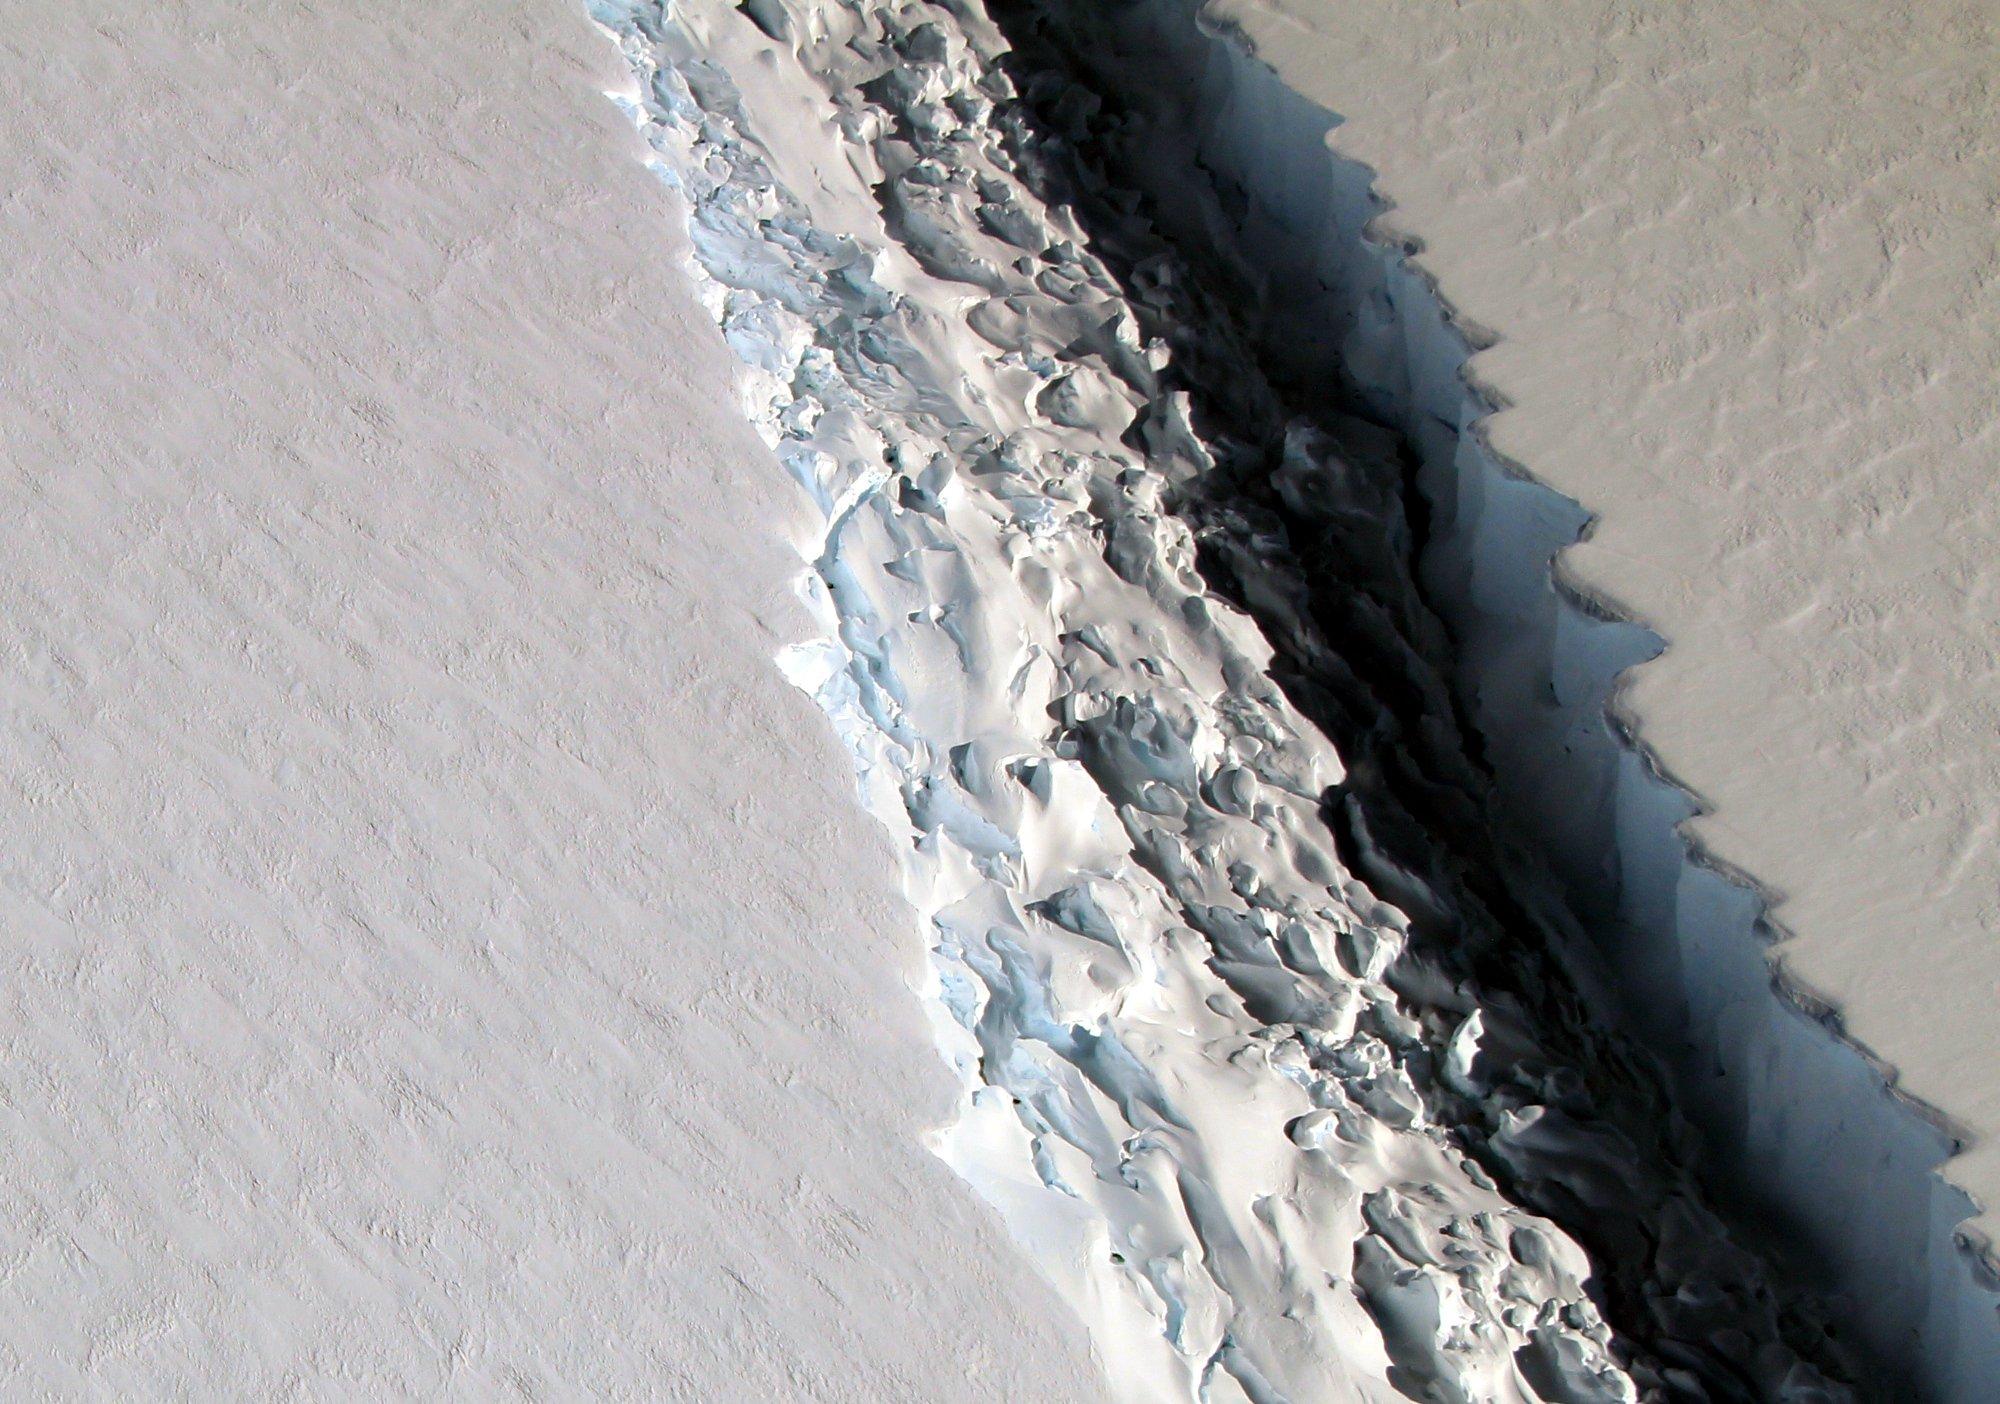 A shelf of ice will break off from the continent of Antarctica sometime in the coming months. SUBMITTED PHOTO/Courtesy of NASA